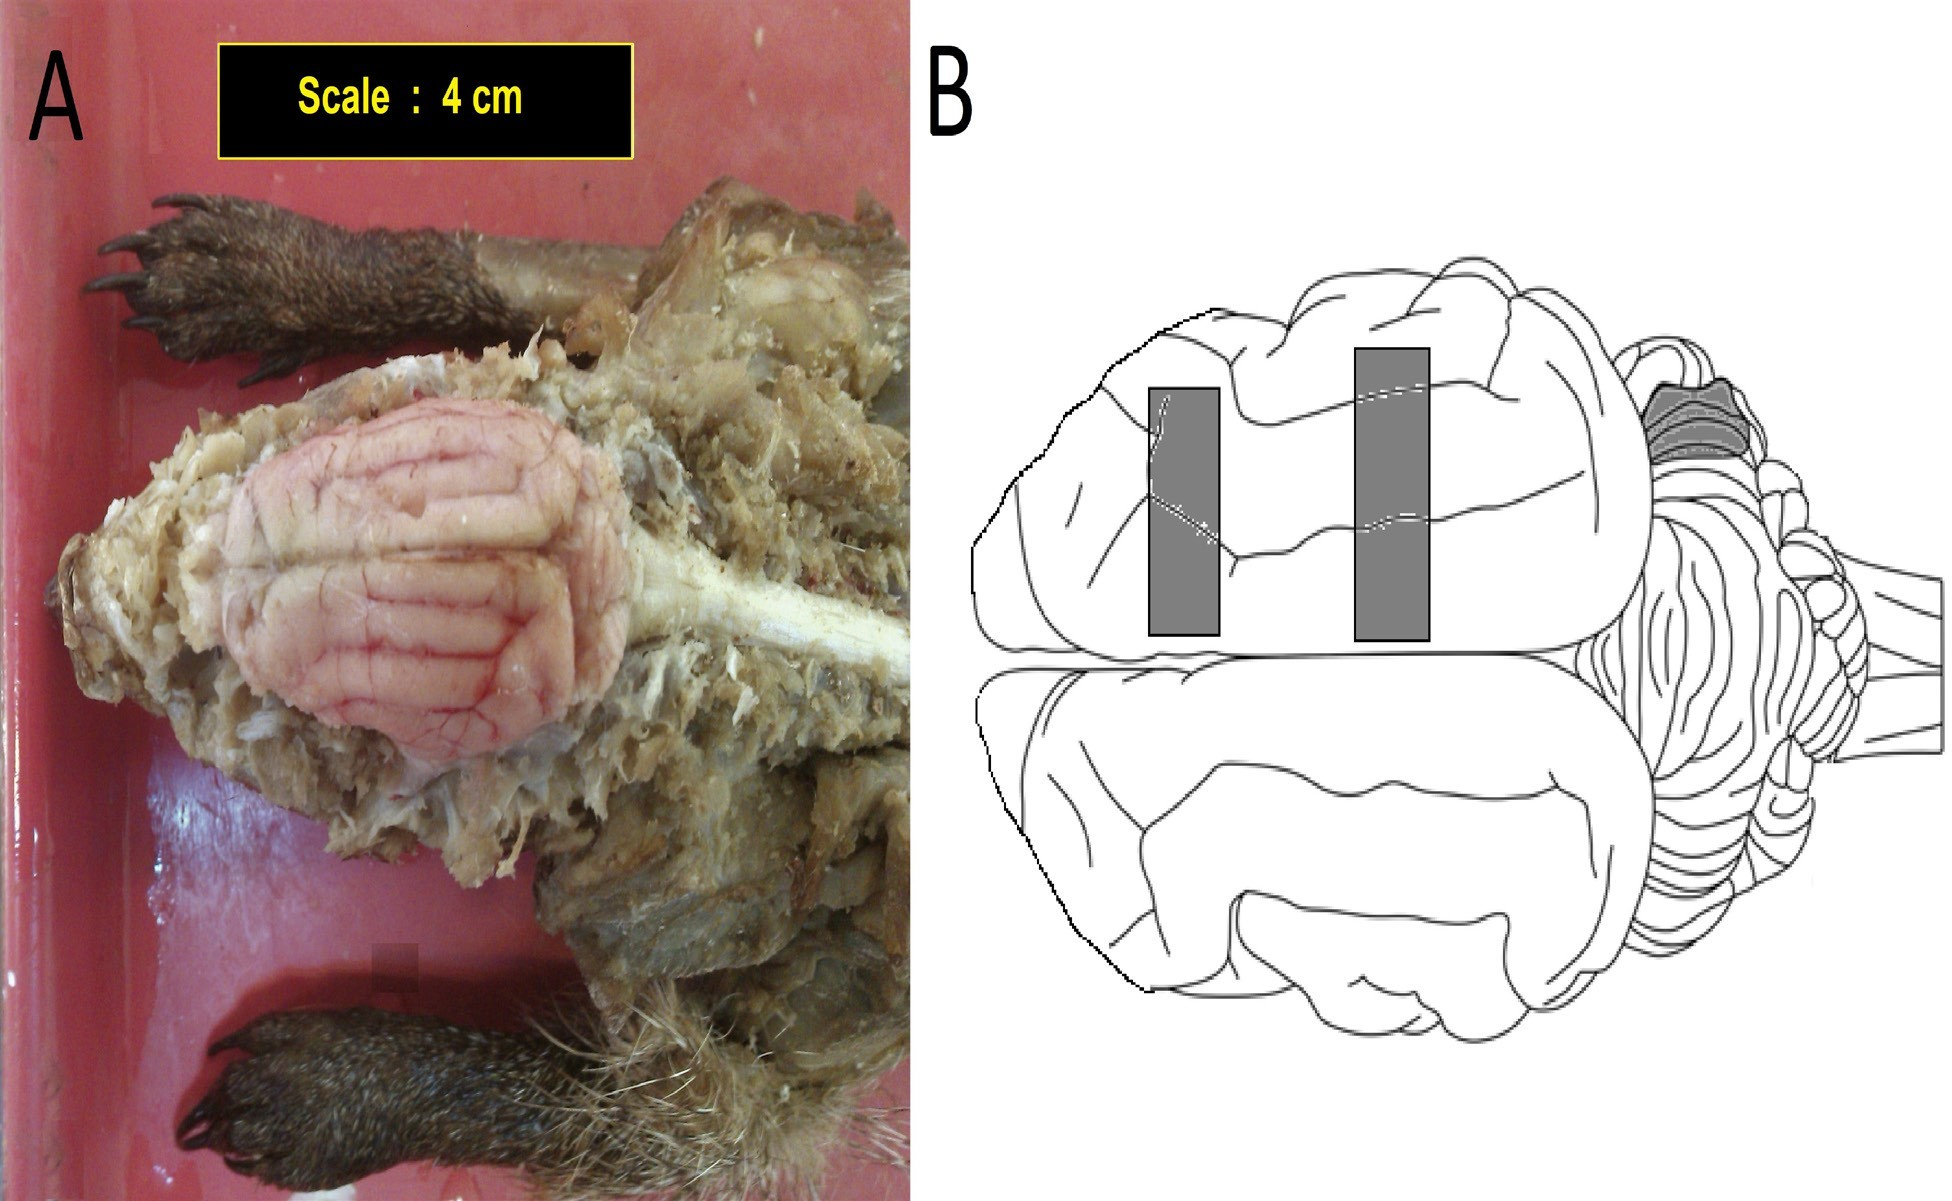 Structure of the brain after removing the skull in an adult mongoose (Dorsal view). B: Areas for tissue sampling of the cerebrum and cerebellum